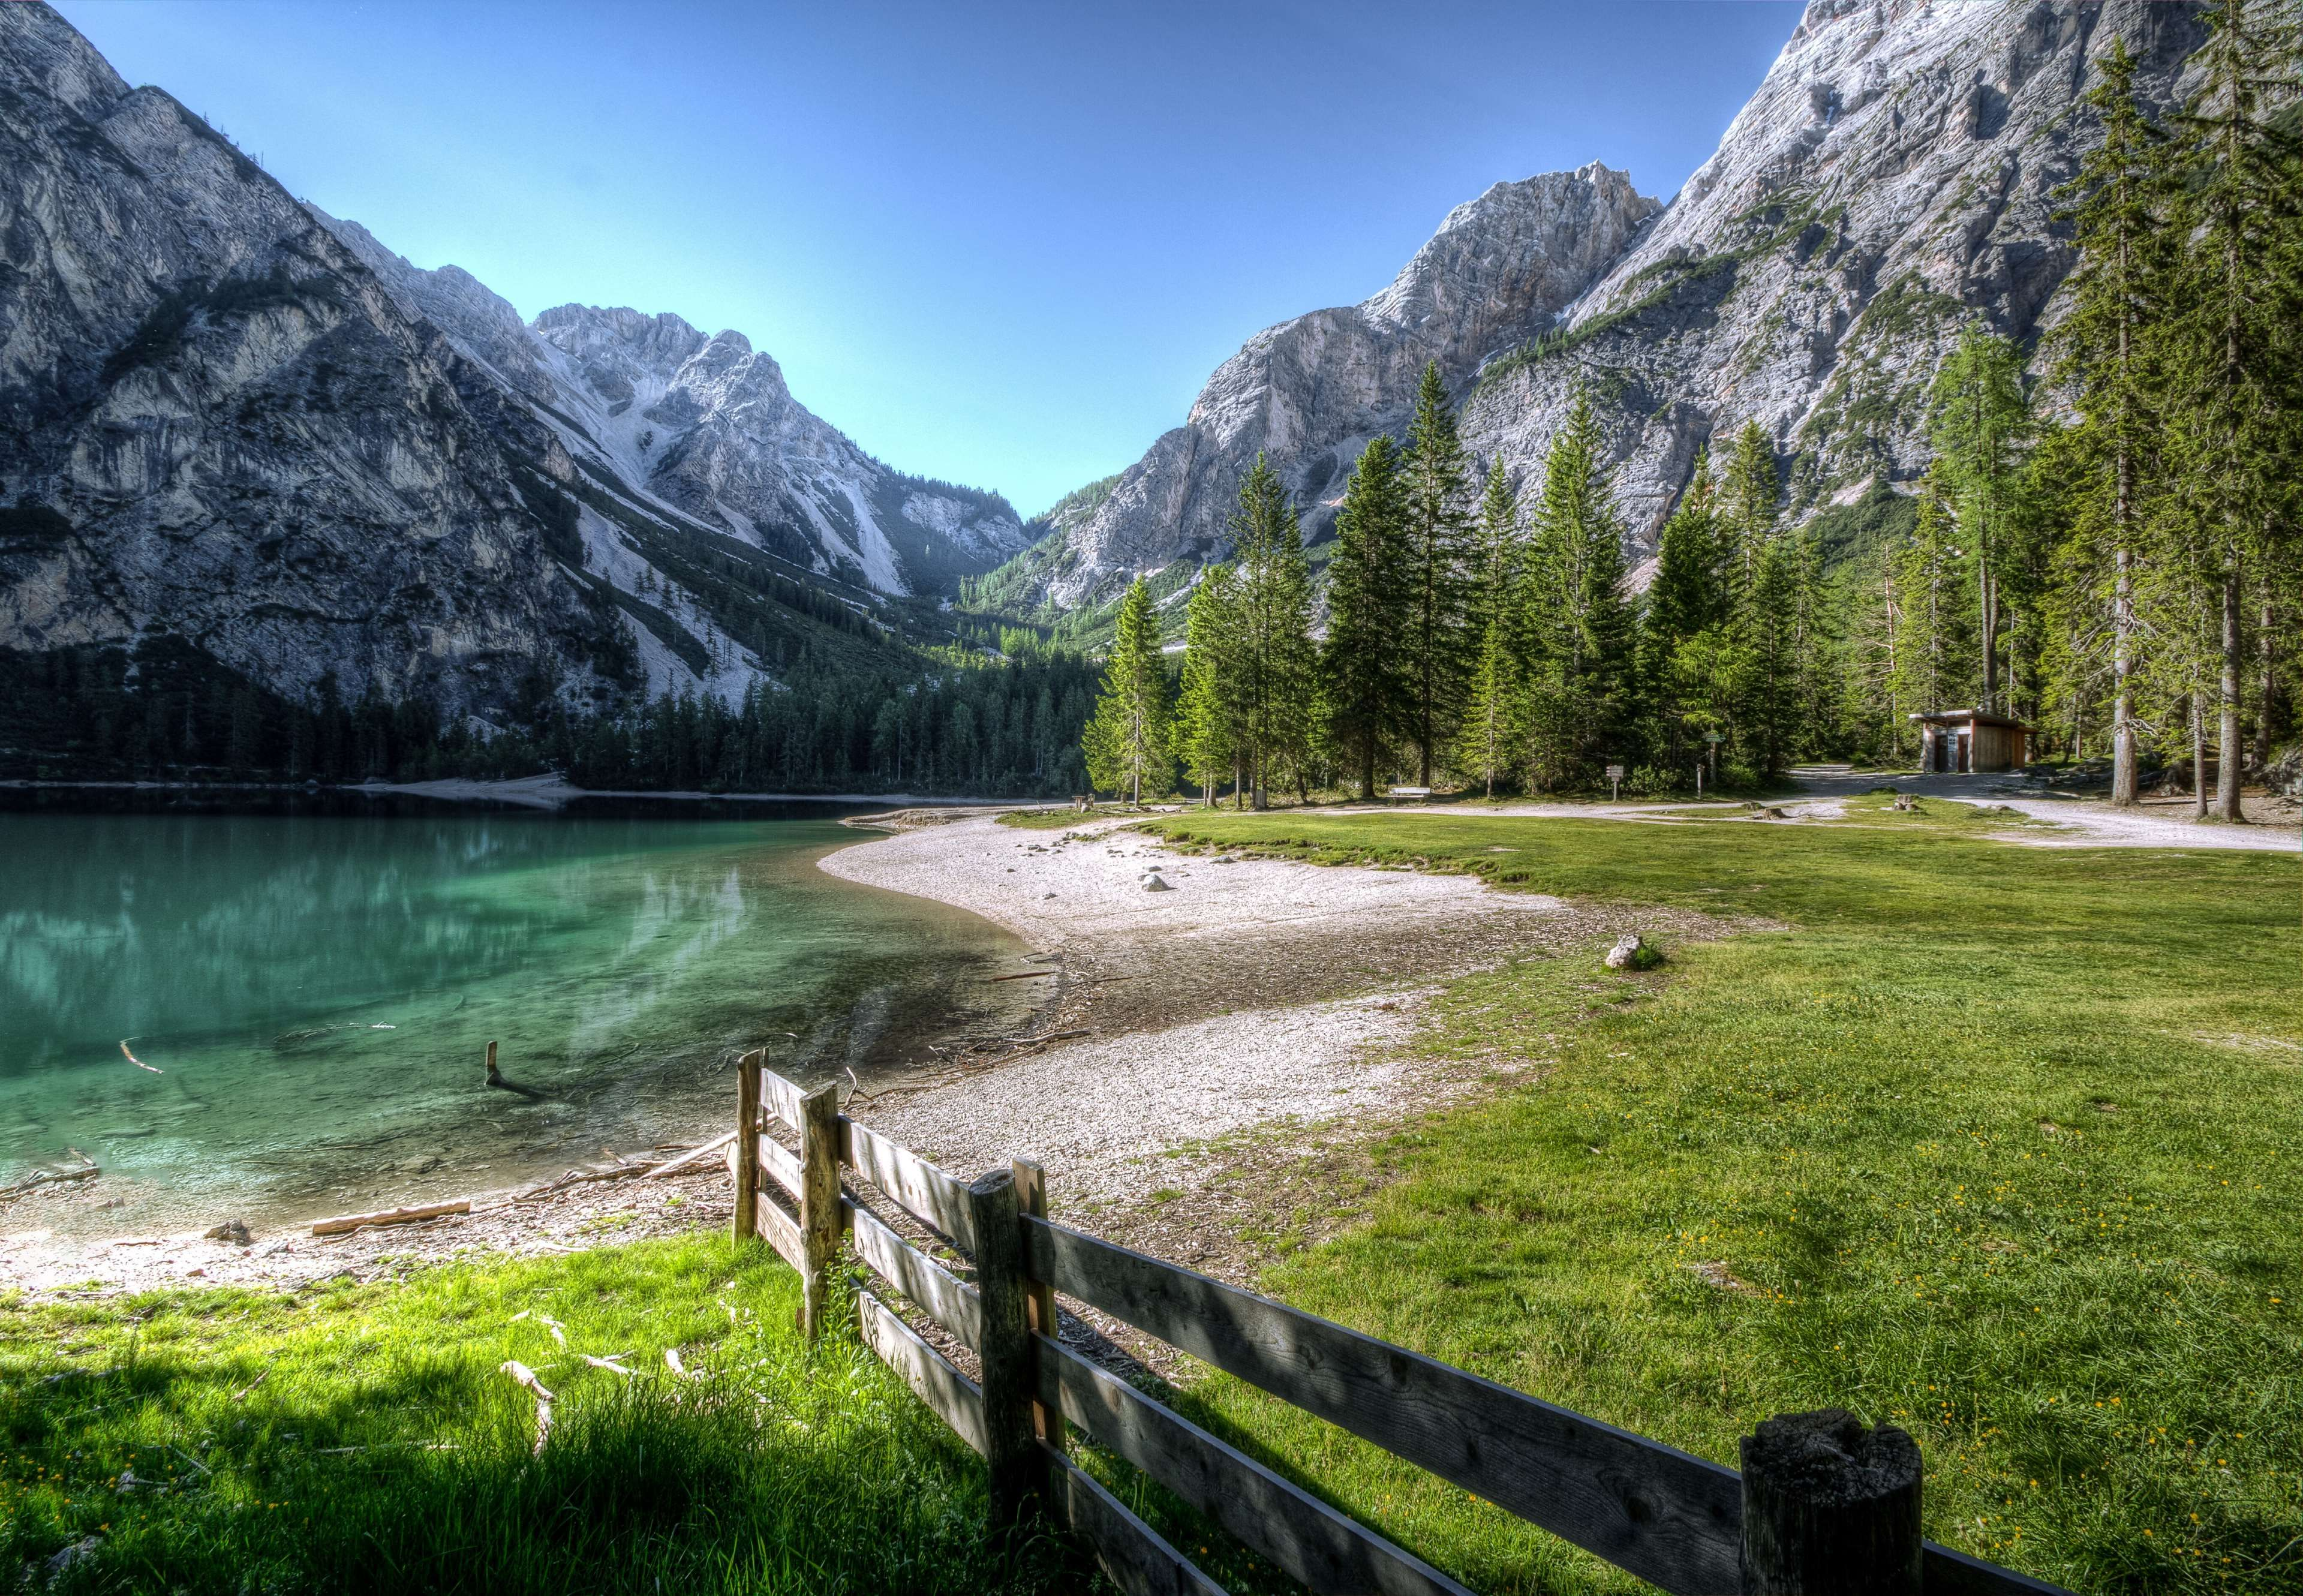 Conifer Fence Grass Hd Wallpaper Lake Landscape Mountain Nature Photography Outdoors Placid Rock Amazing Nature Photos Nature Photos Nature Pictures Wallpaper valley relief grass river sky